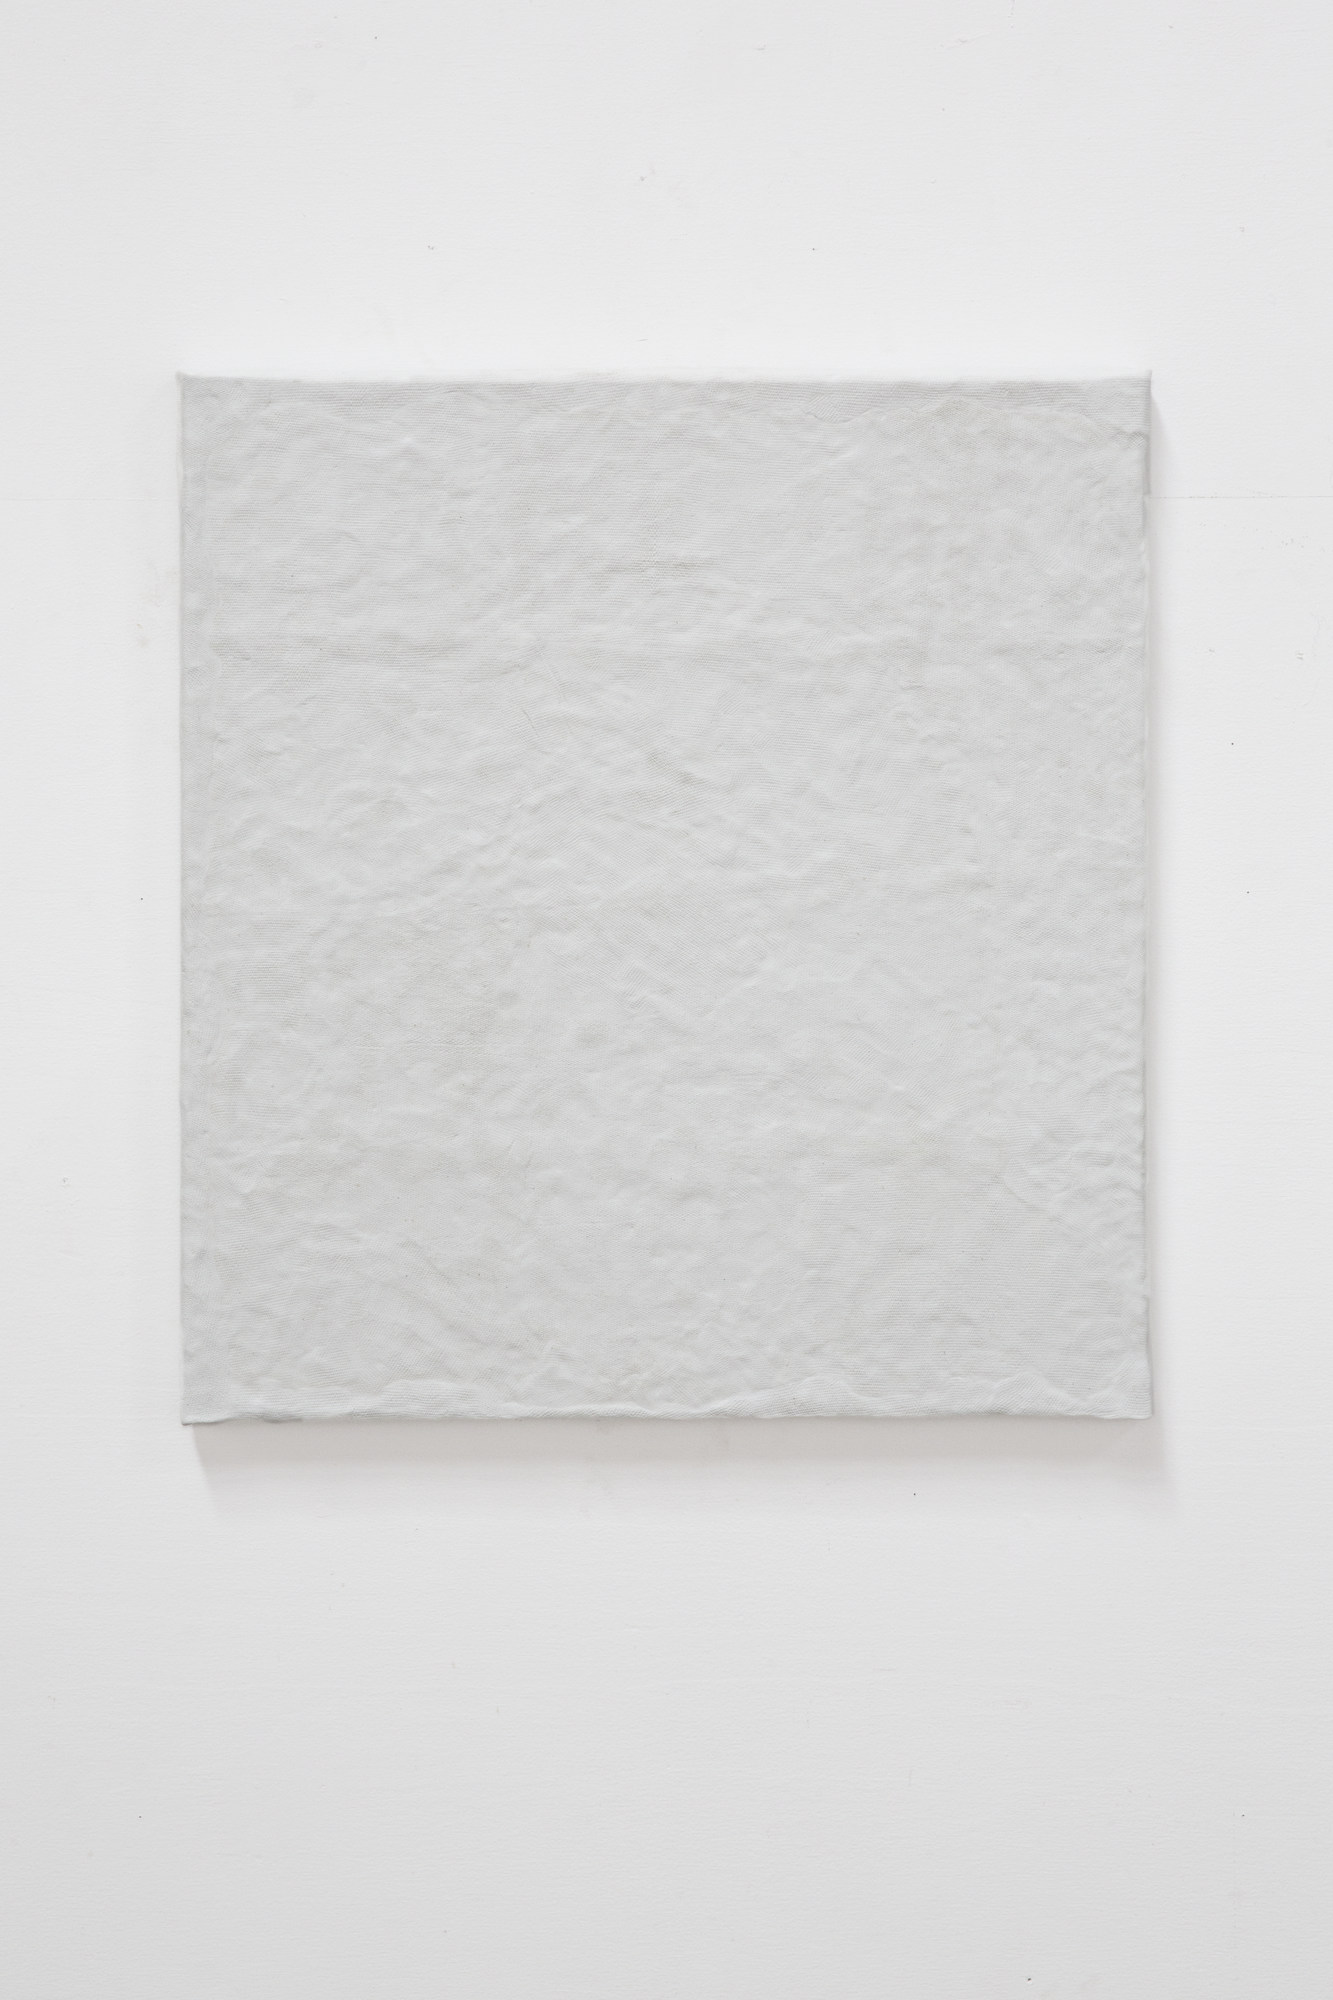 Nick Fusaro Untitled (White Canvas) (1)